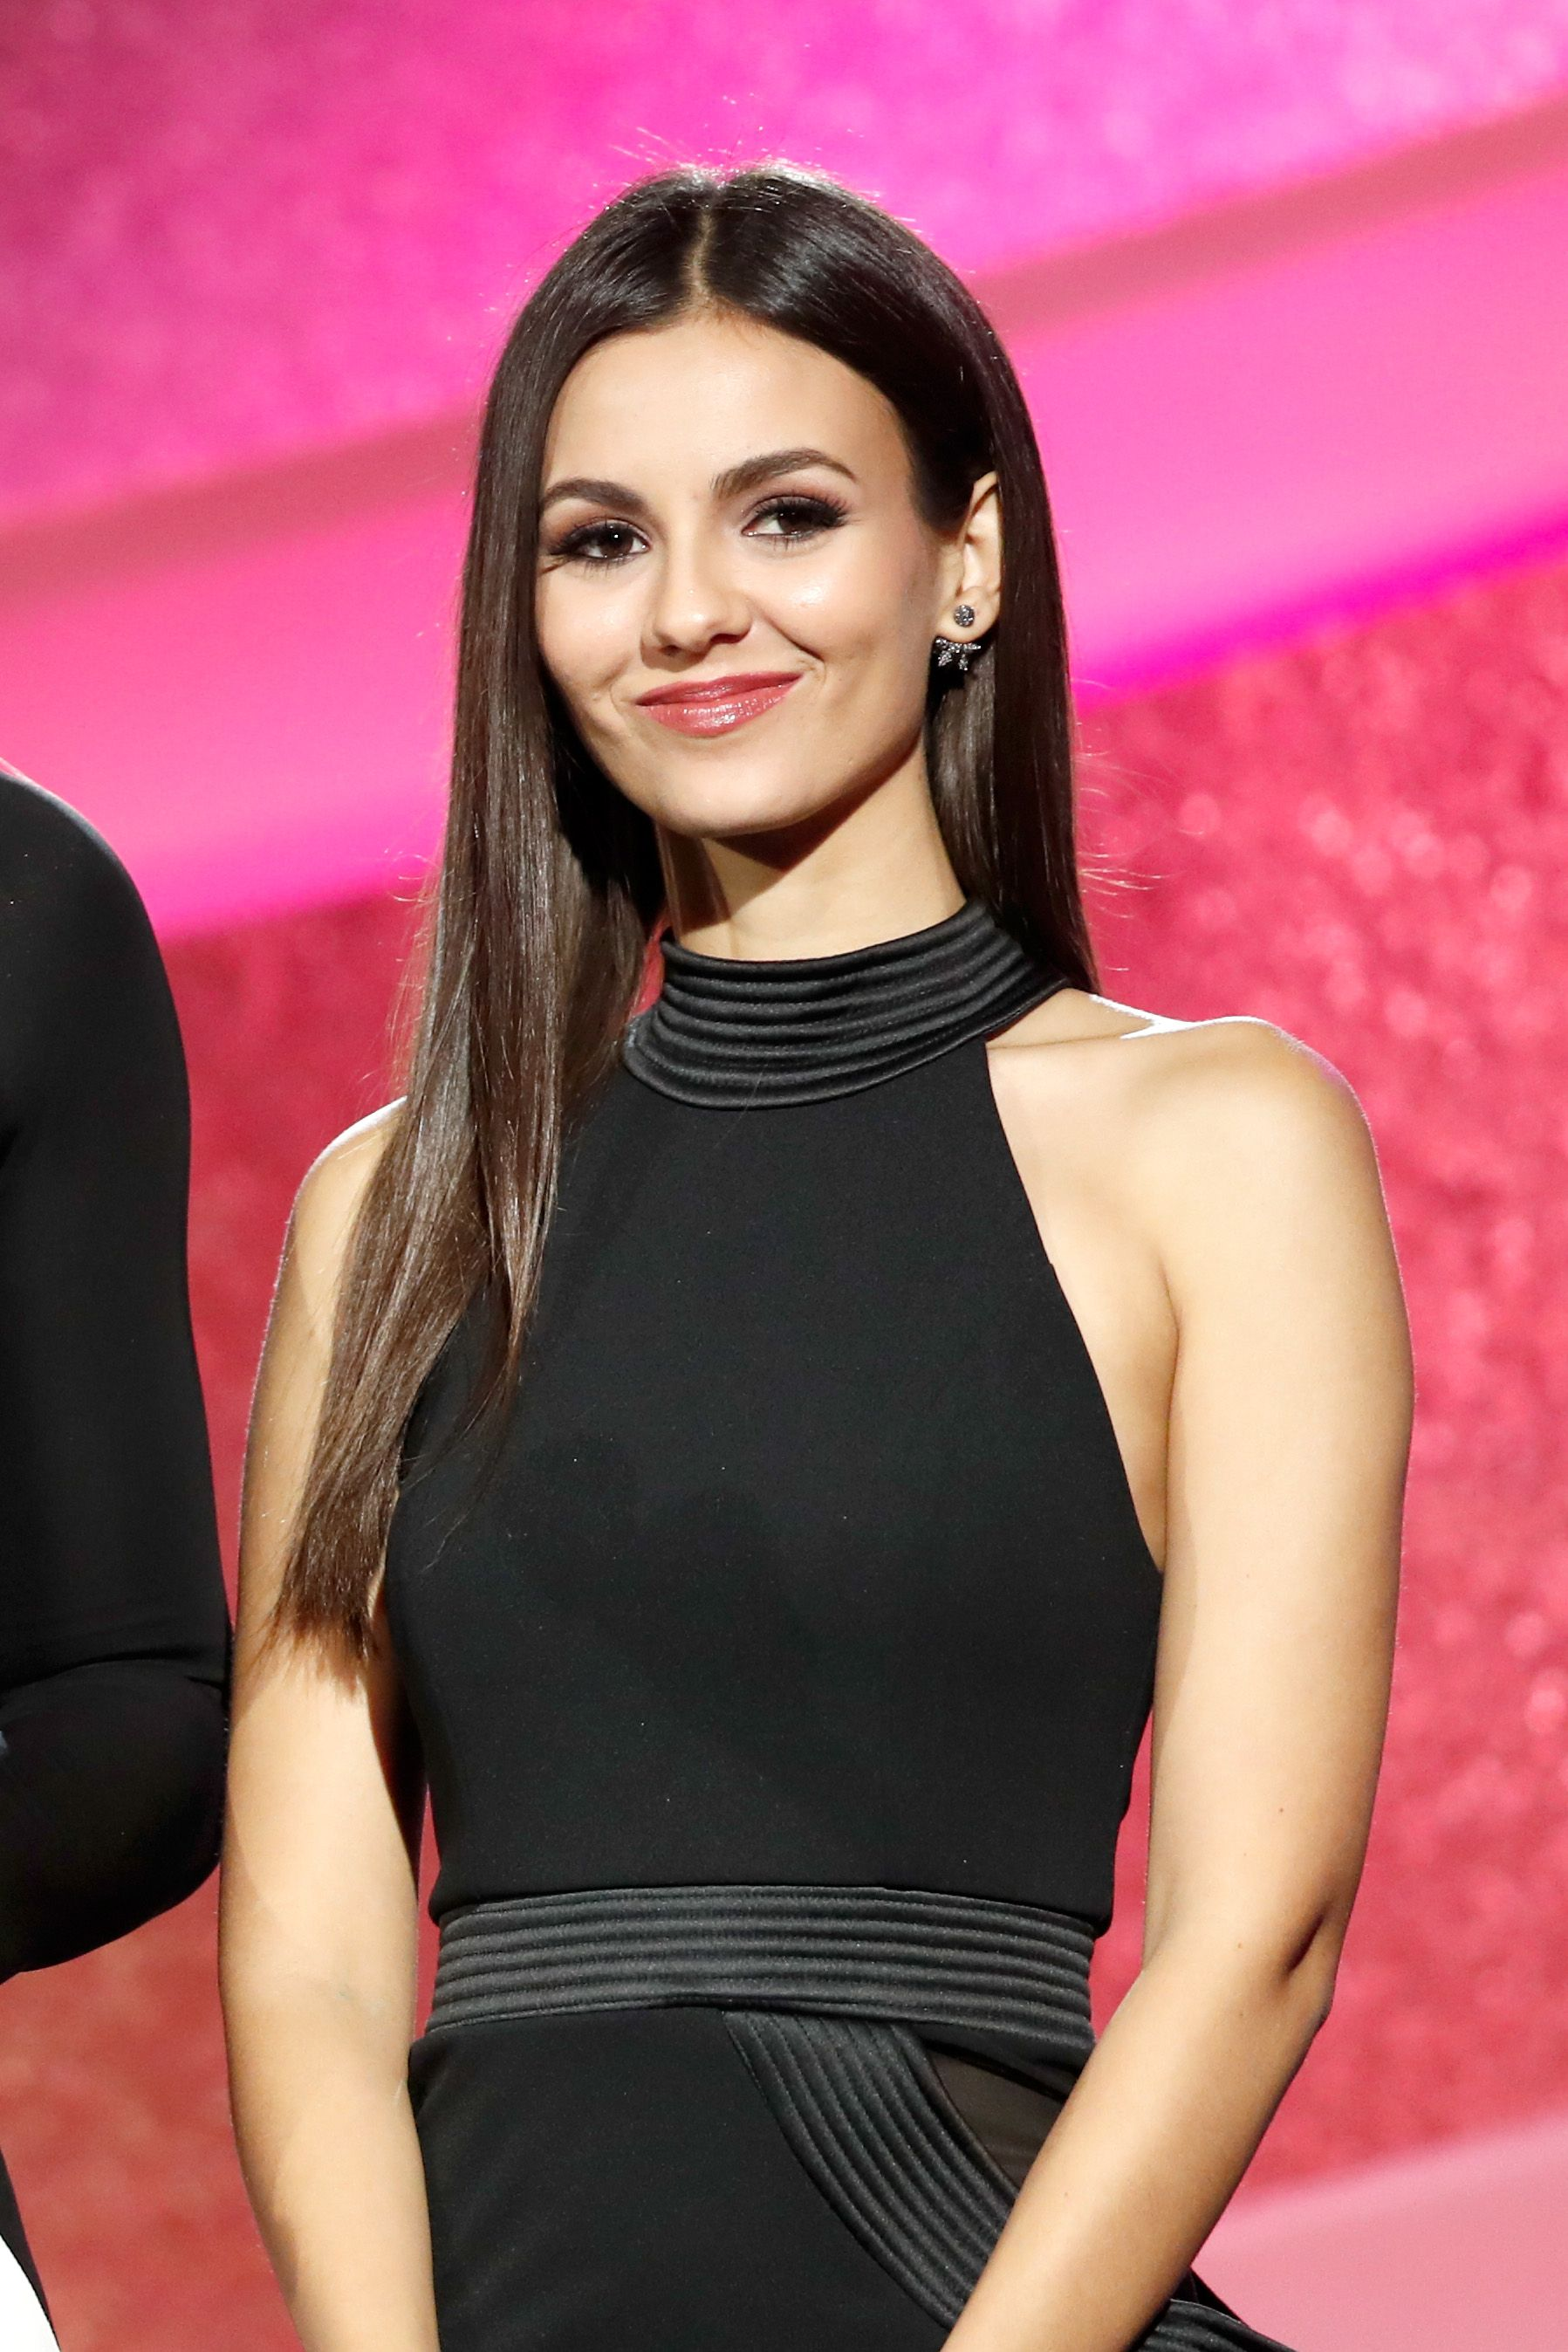 Pin by Marco H on Victoria Justice | Pinterest | Victoria justice